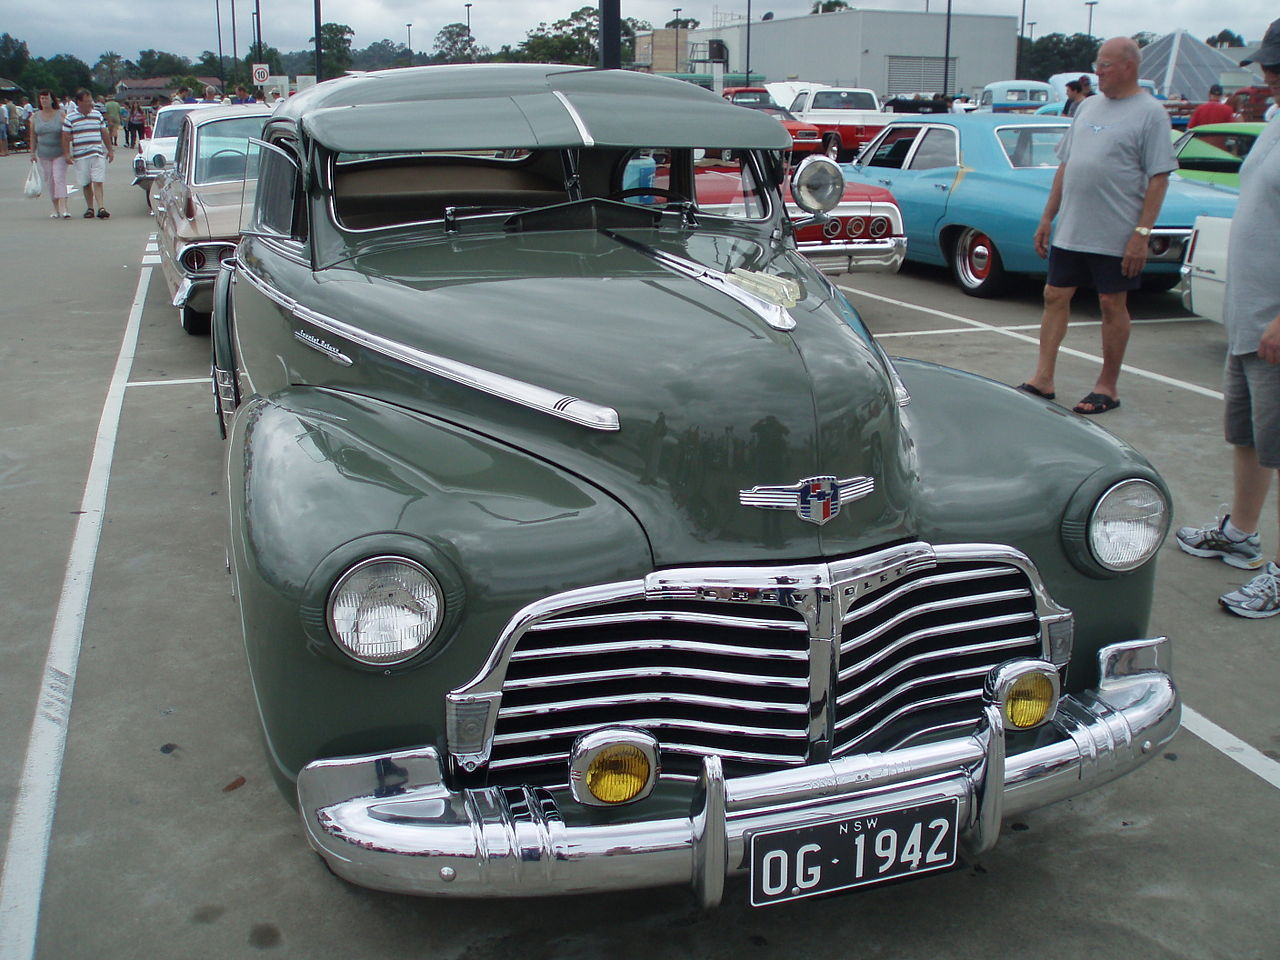 All Chevy » 1942 Chevrolet Fleetline - Old Chevy Photos